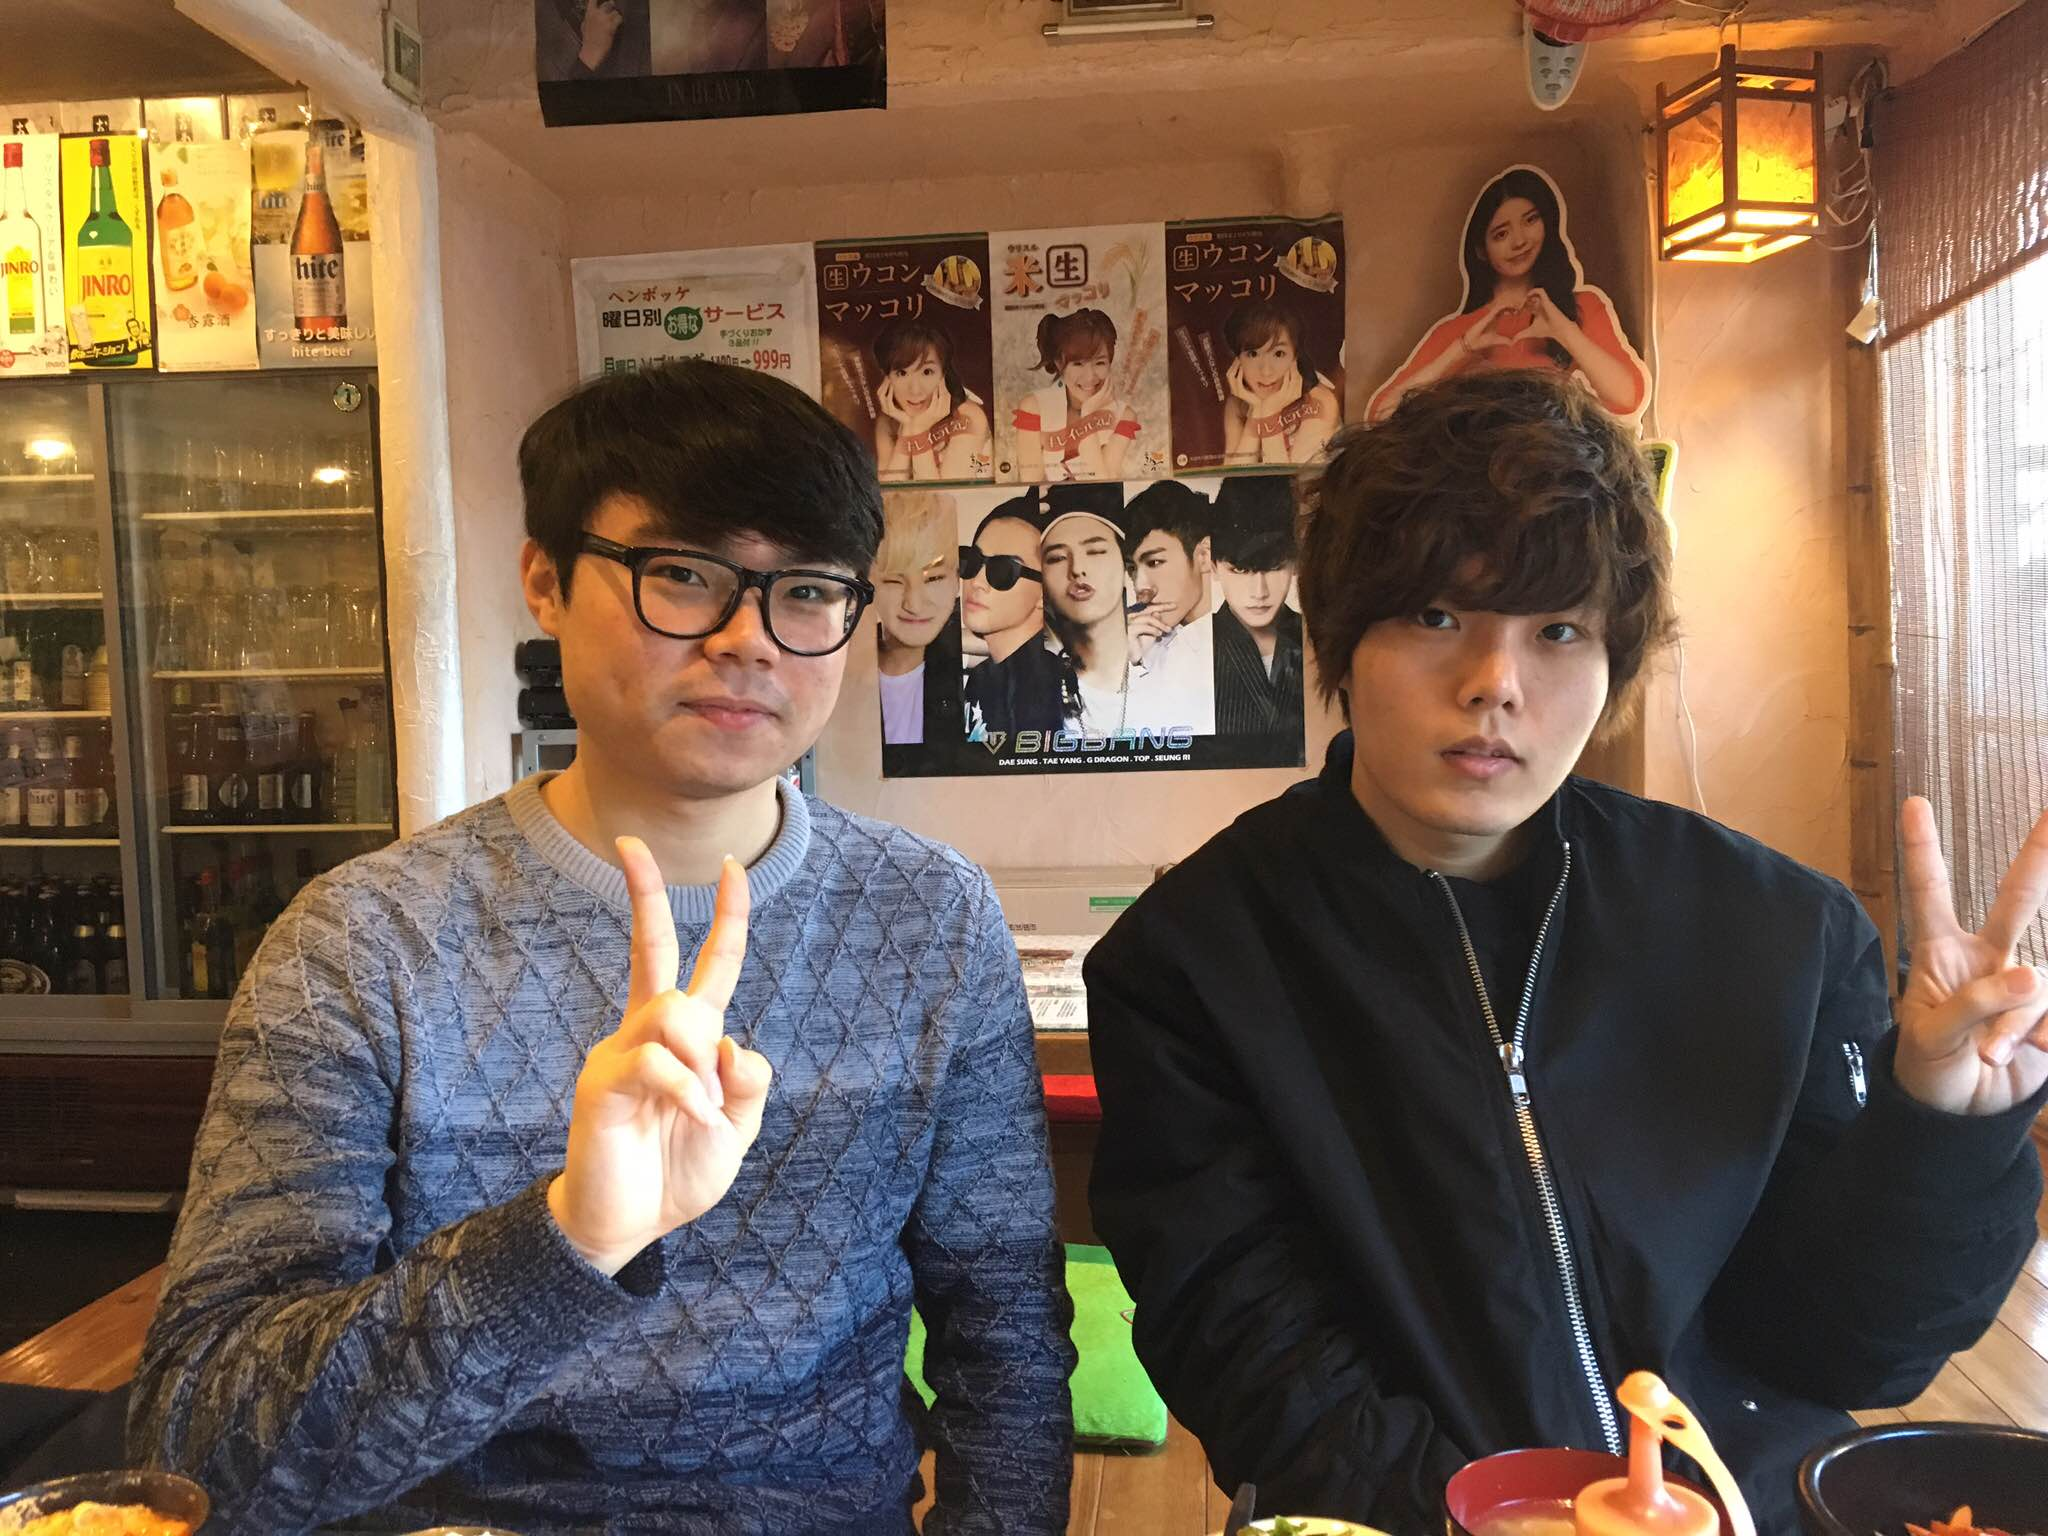 From right, Gong Doyoung,20, and Chu Yeonjun,22 are Keio University students from Korea.